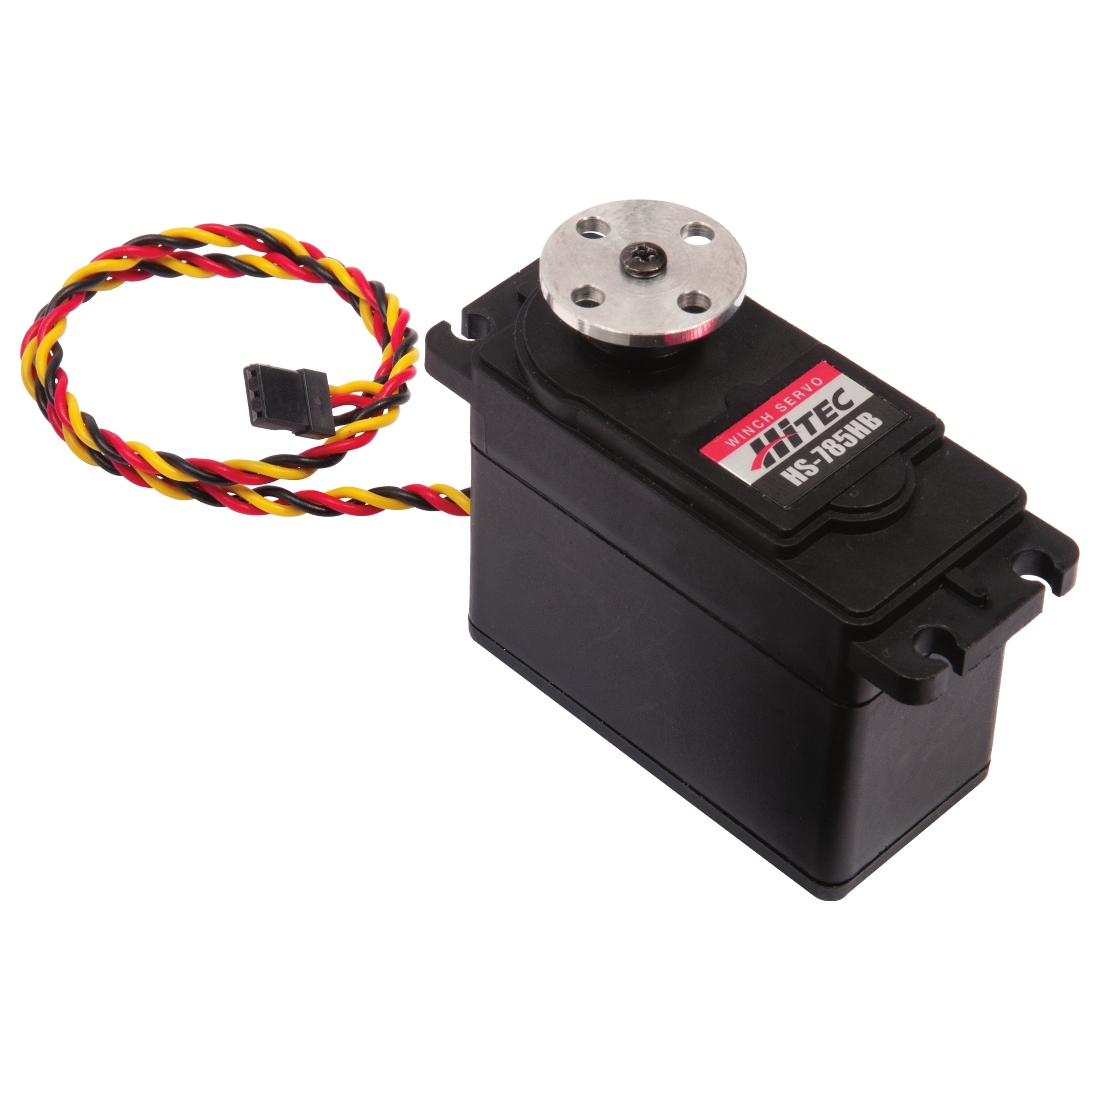 Tetrix Max Quarter Scale Hs 785hb Winch Servo Motor With